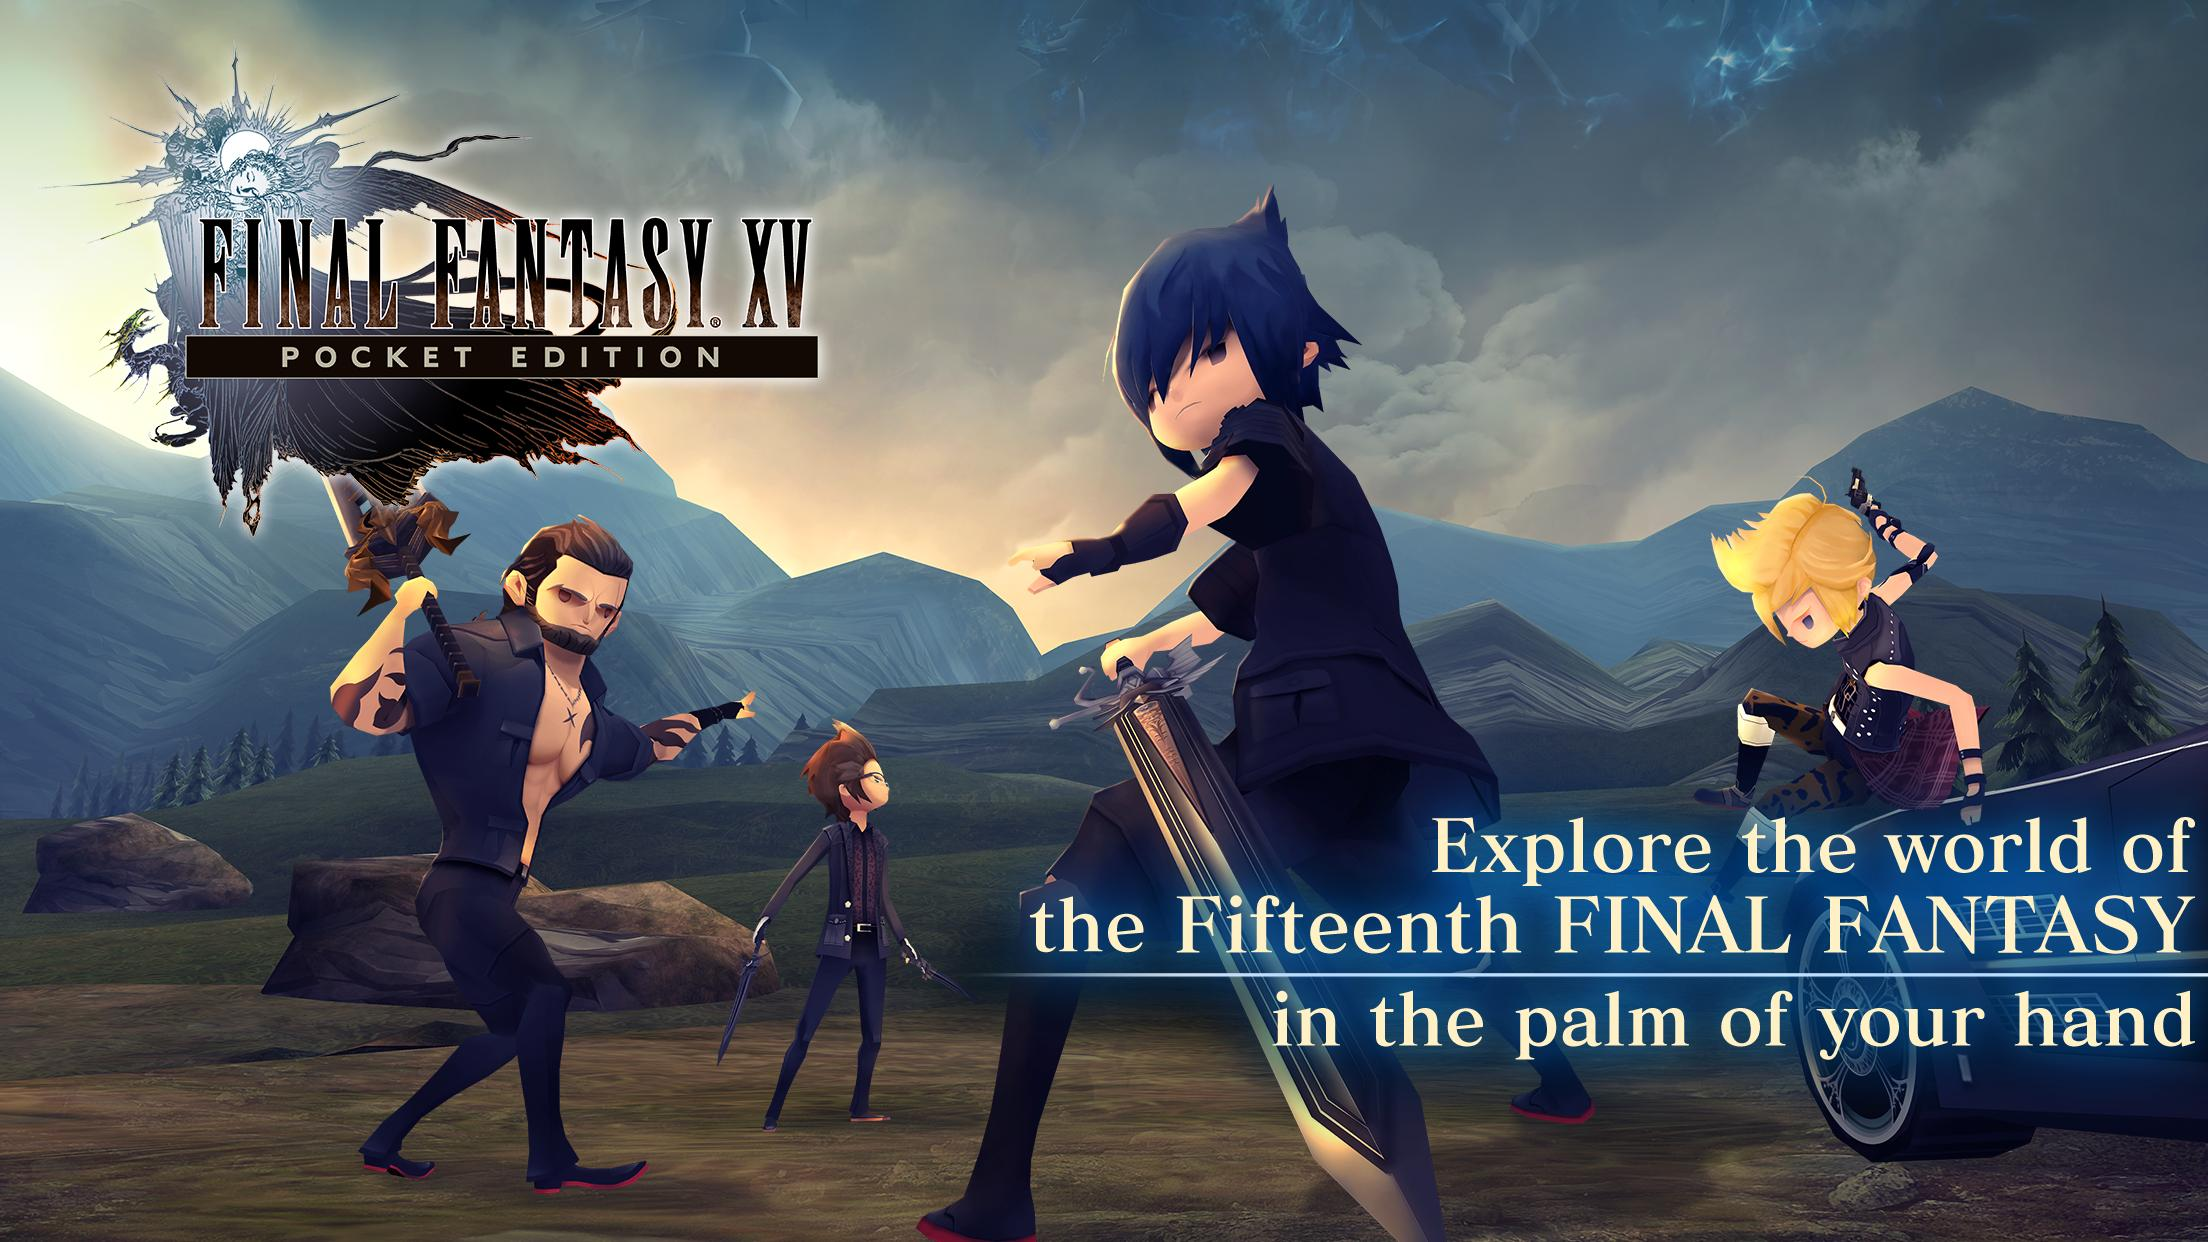 FINAL FANTASY XV POCKET EDITION for Android - APK Download